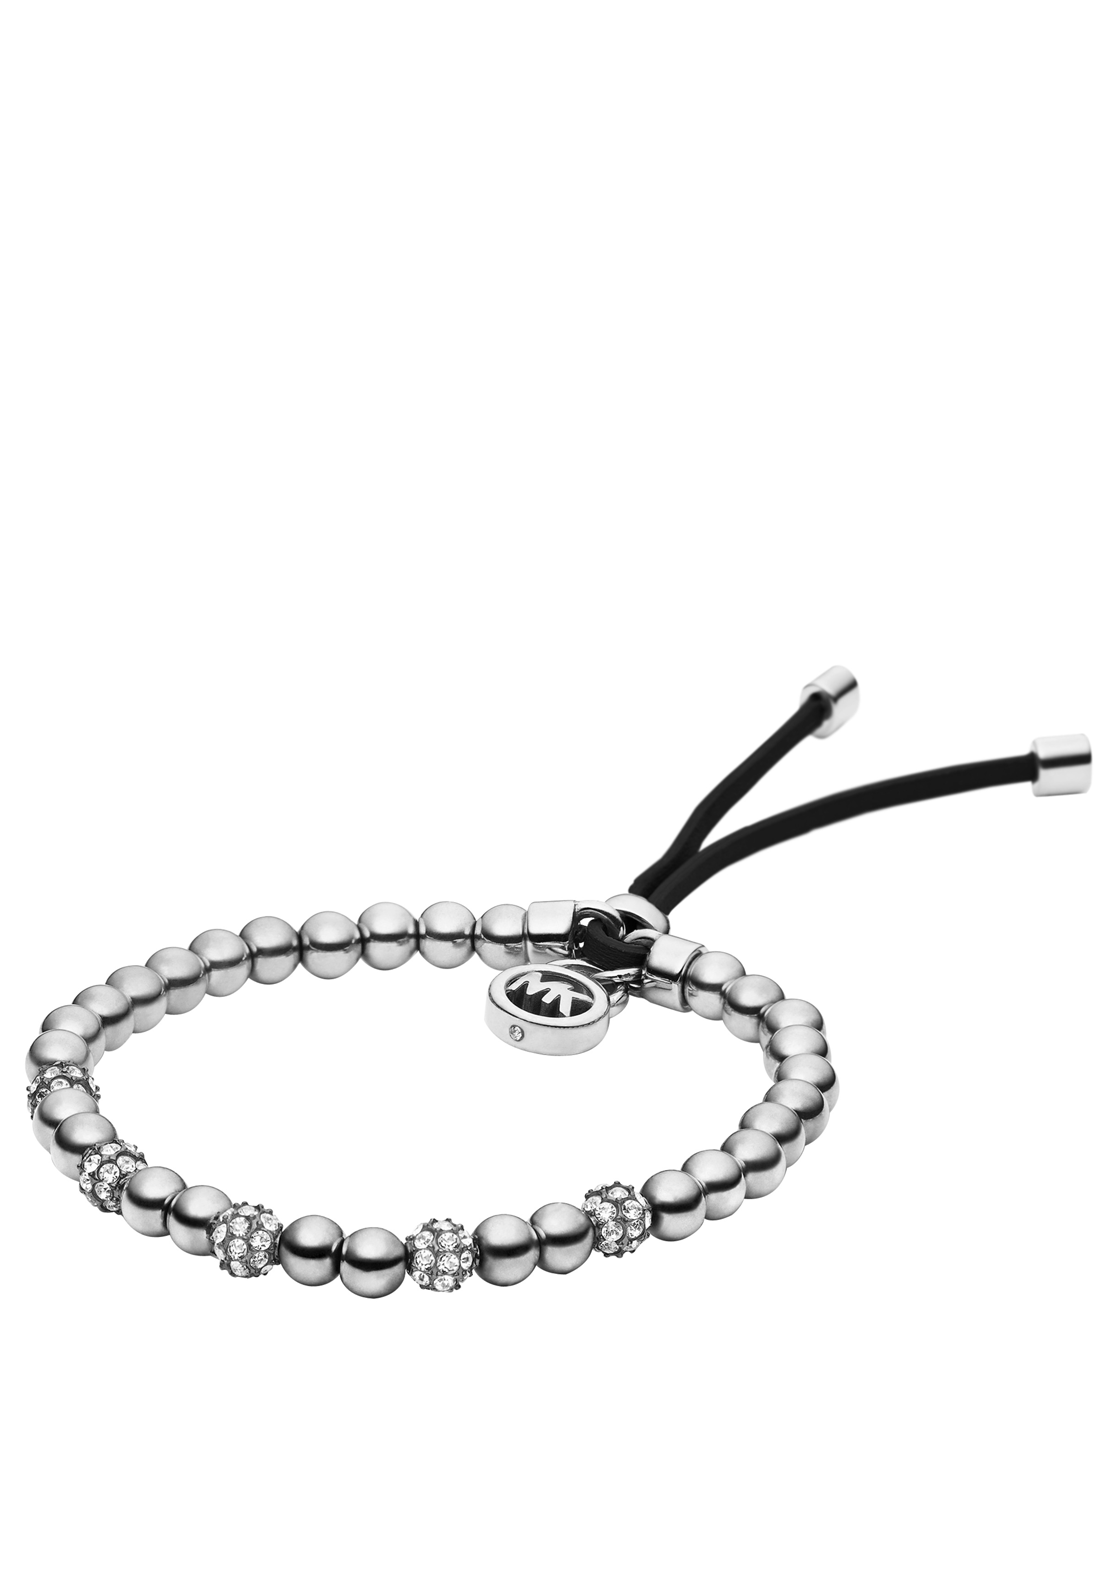 Michael Kors Womens Beaded Bracelet, Silver